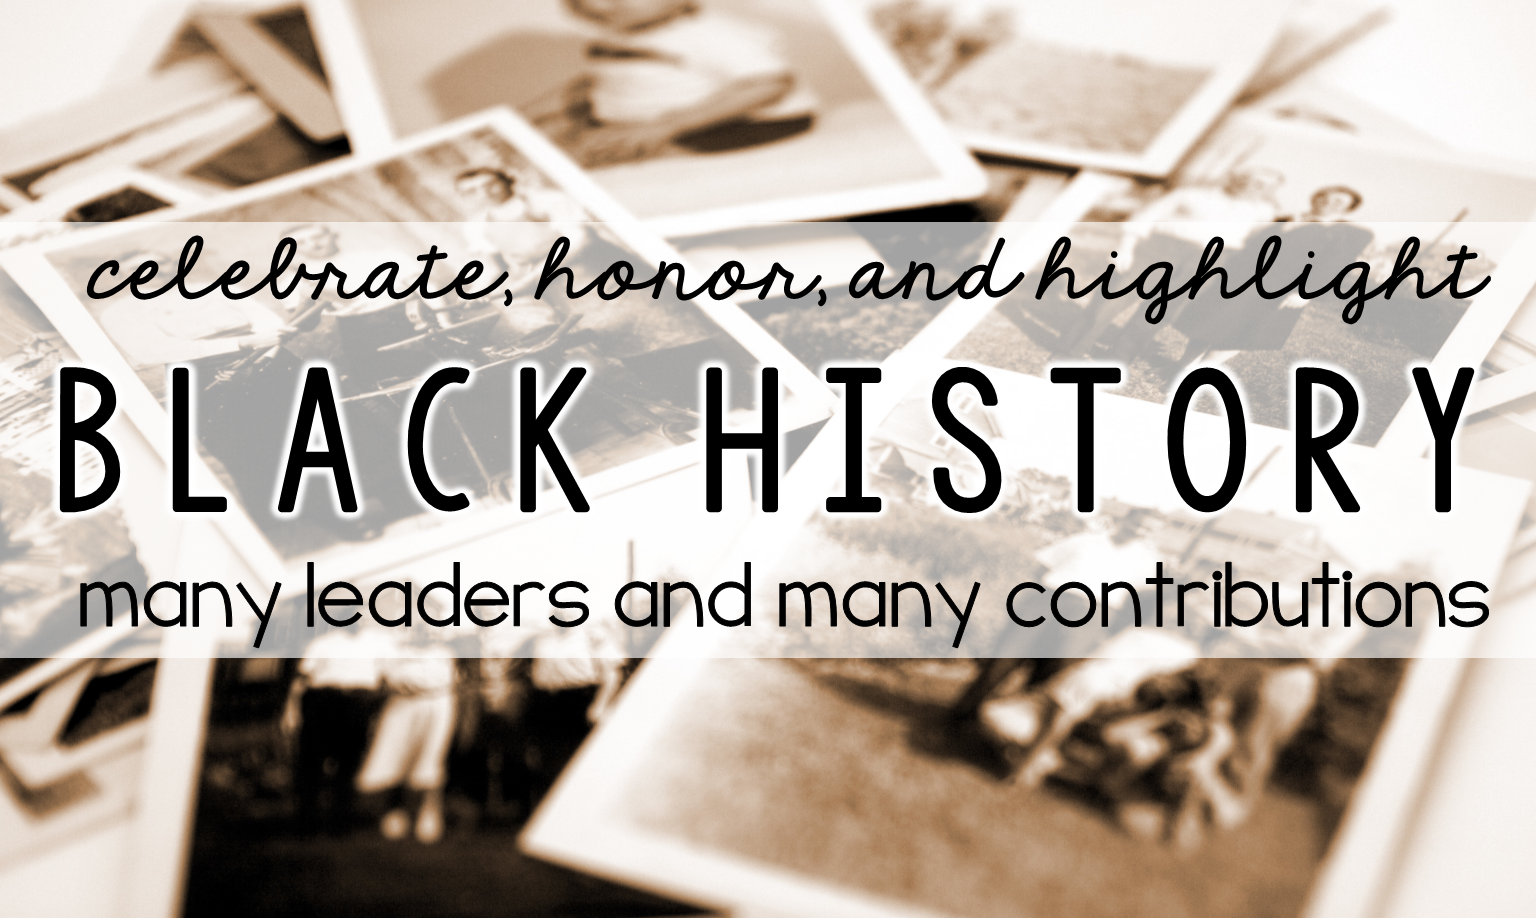 20 plus book recommendations for Black History Month (and all year long) are shared along with must do activities in this round up post.